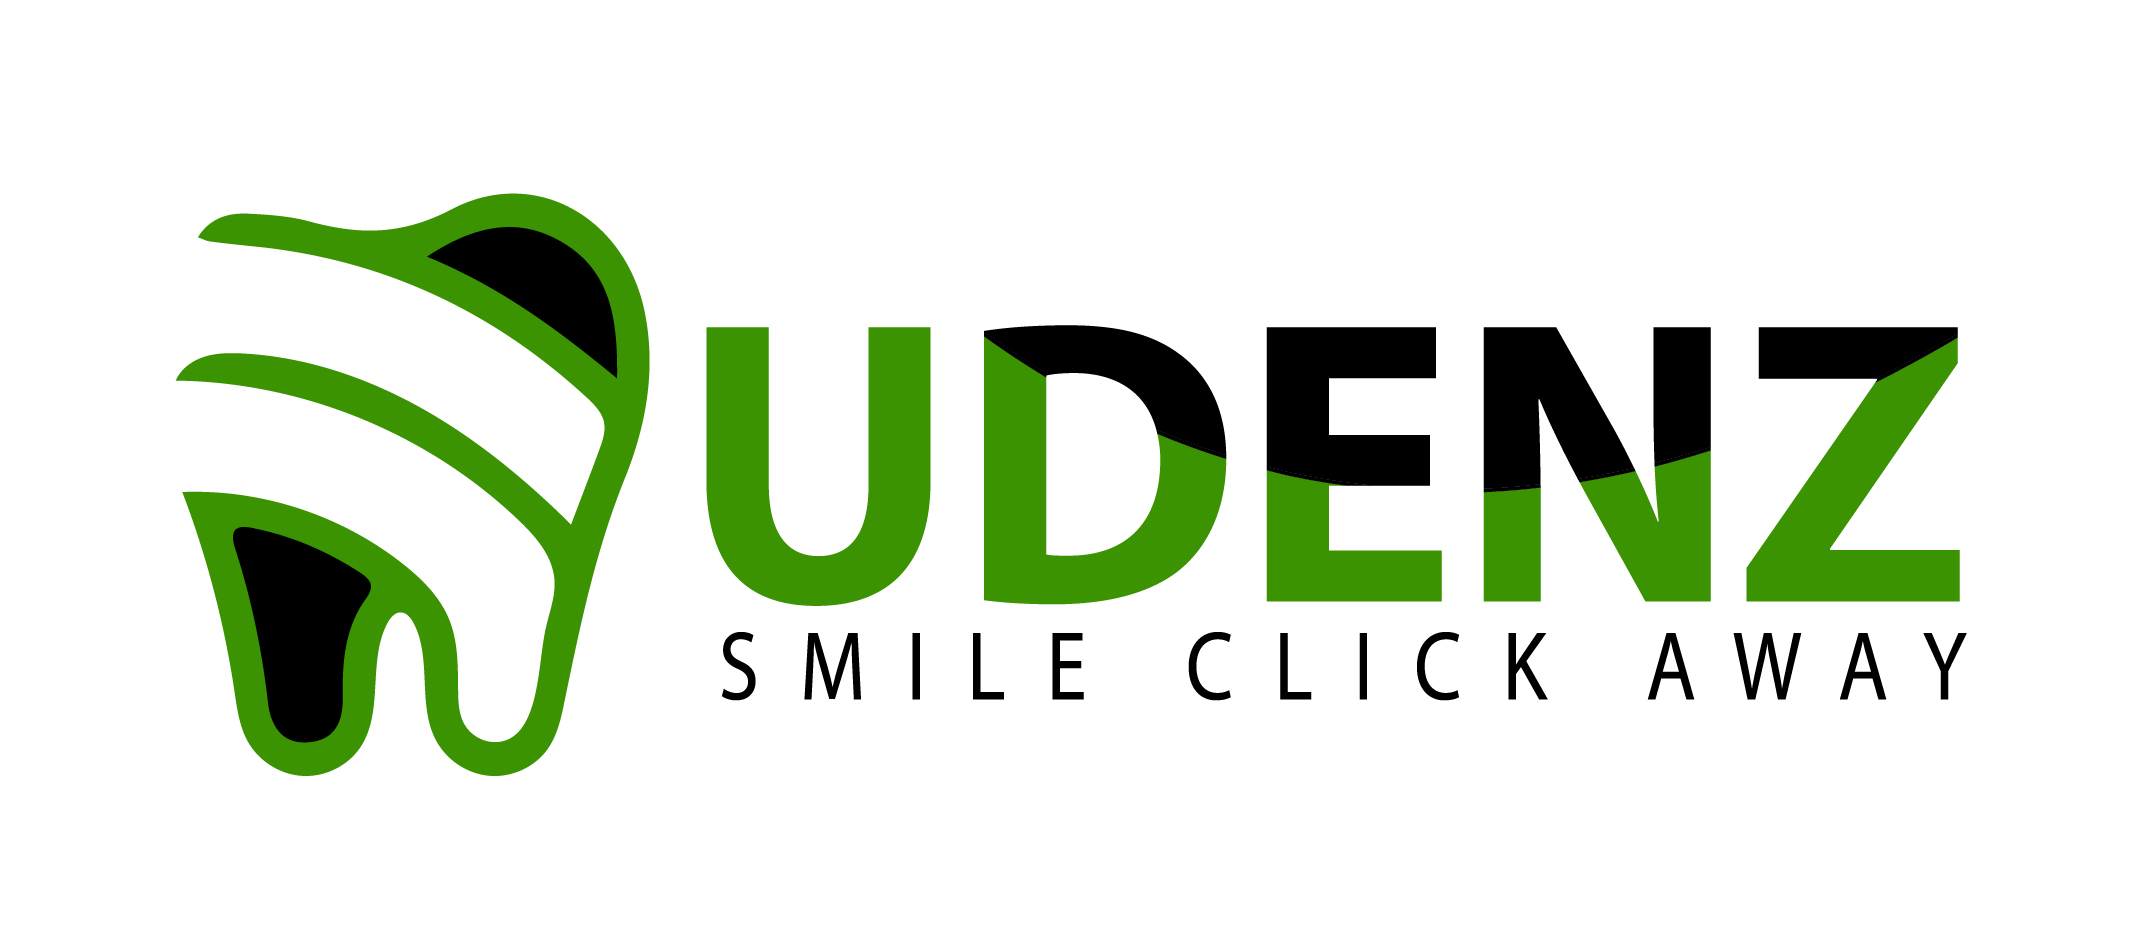 - Largest MENA Online Dental Platform with over 4000 Practicing Dentists in 12 Countries and 16 Cities in Middle East.